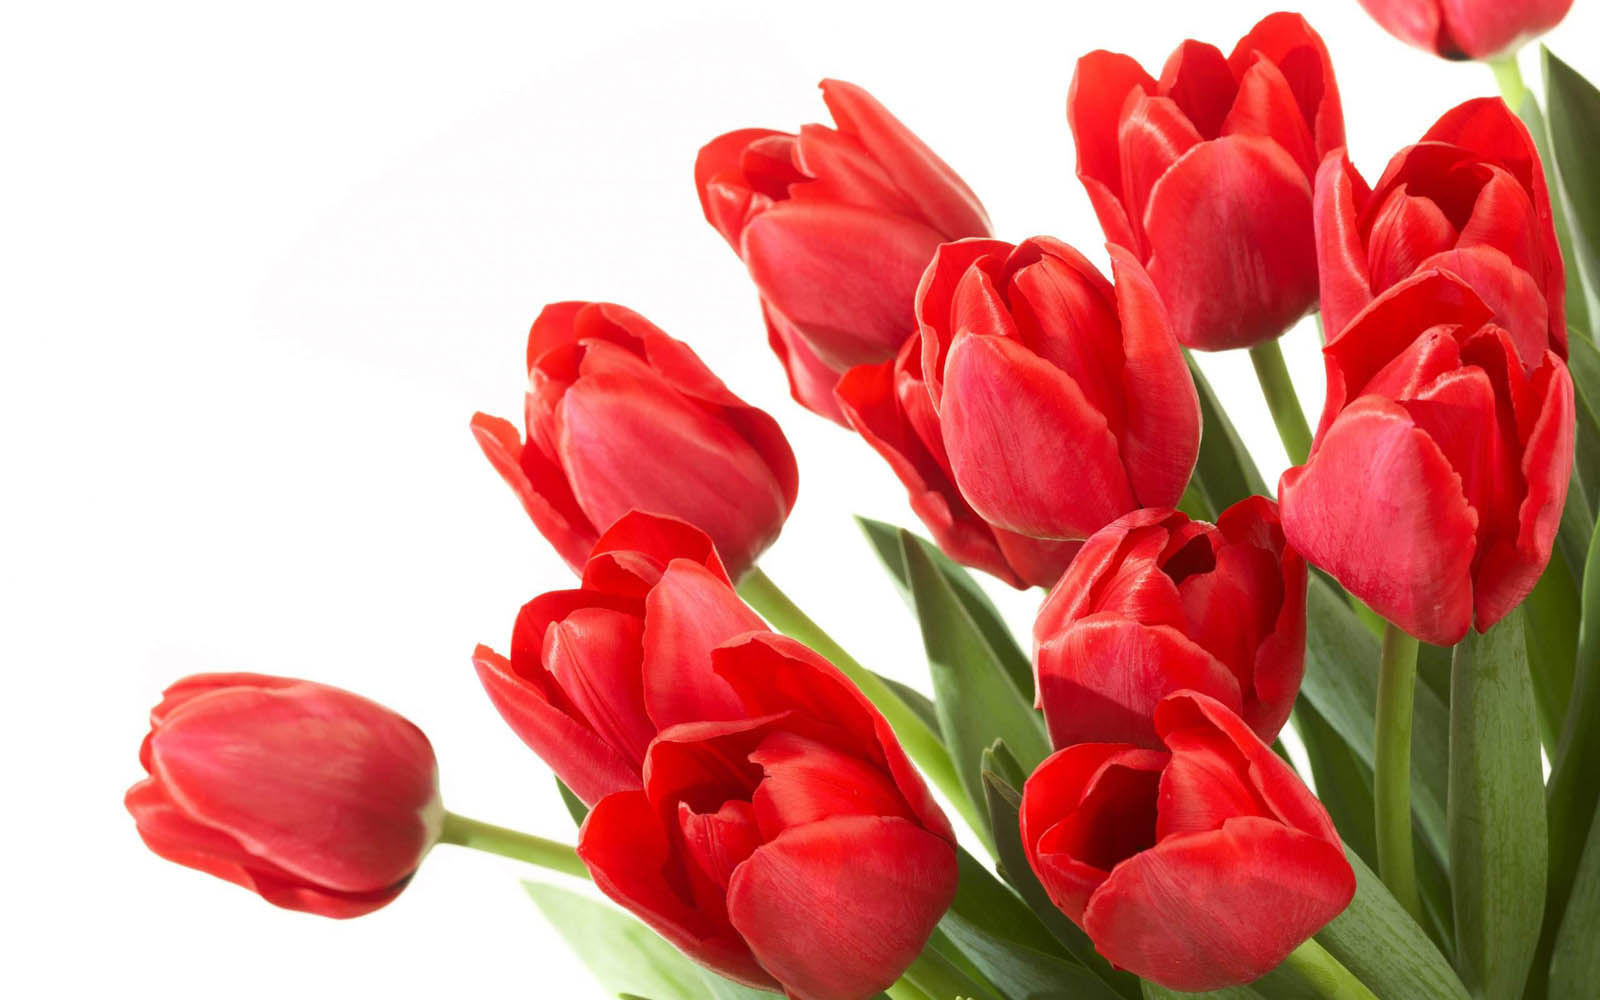 http://3.bp.blogspot.com/-bT1f9qSzLa0/UAhFRMFaQsI/AAAAAAAAF2Q/wUmBBtKIiYI/s1600/Red+Tulips+Wallpapers+1.jpg